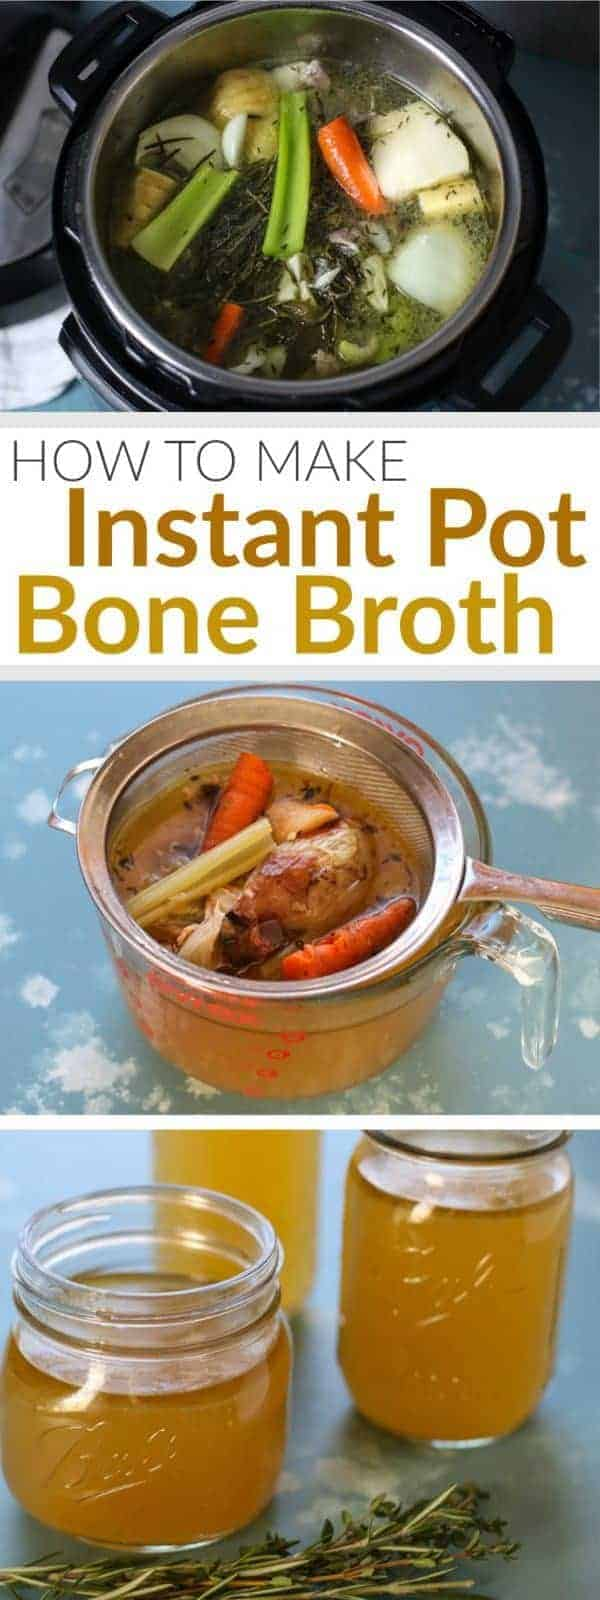 How to Make Instant Pot Bone Broth | Easy, nourishing and incredibly economical, bone broth is a great way to stretch your food dollar and provide your body with gut-healing goodness | therealfoodrds.com